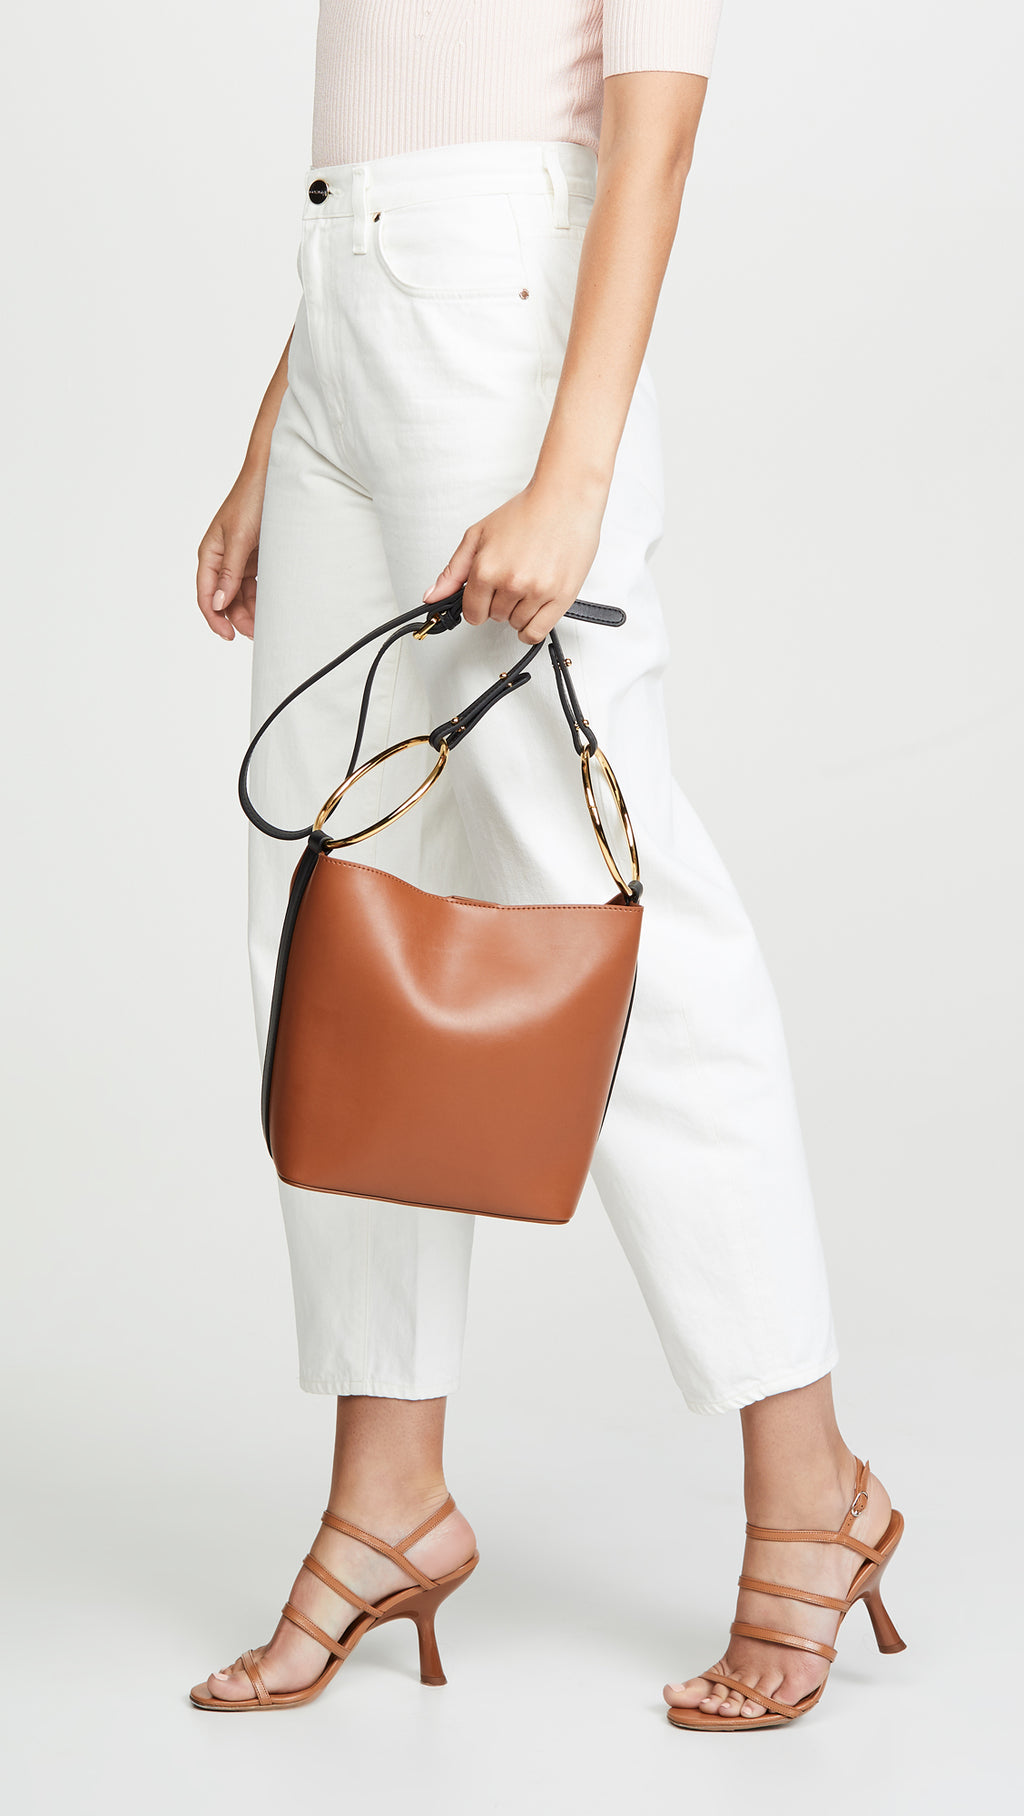 Hooked Chain & Bucket Bag in Brown | Parisa Wang | Featured